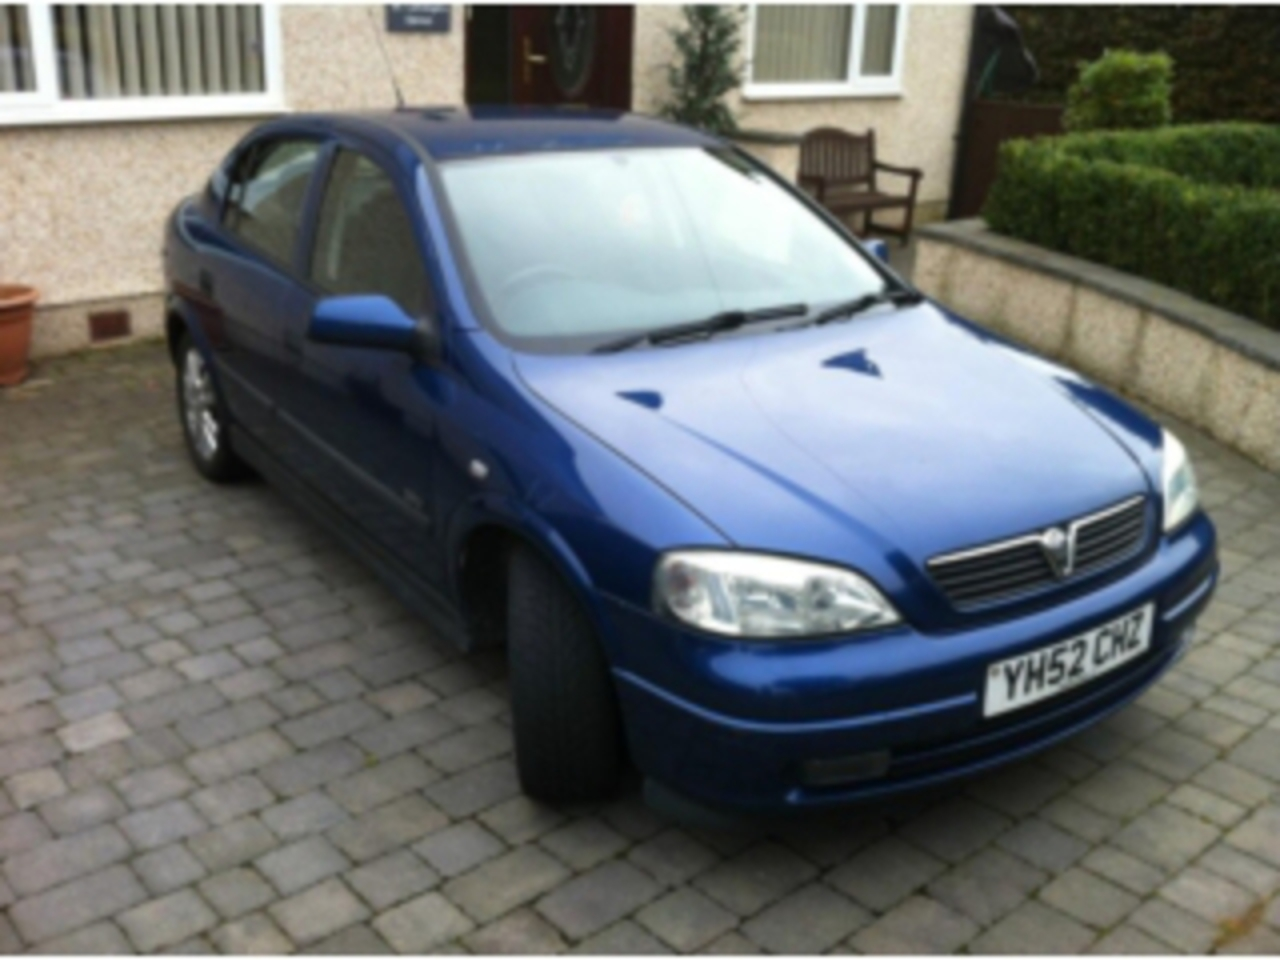 16v Sxi Mot until, miles Very good condition Sport, Opel Astra 16i